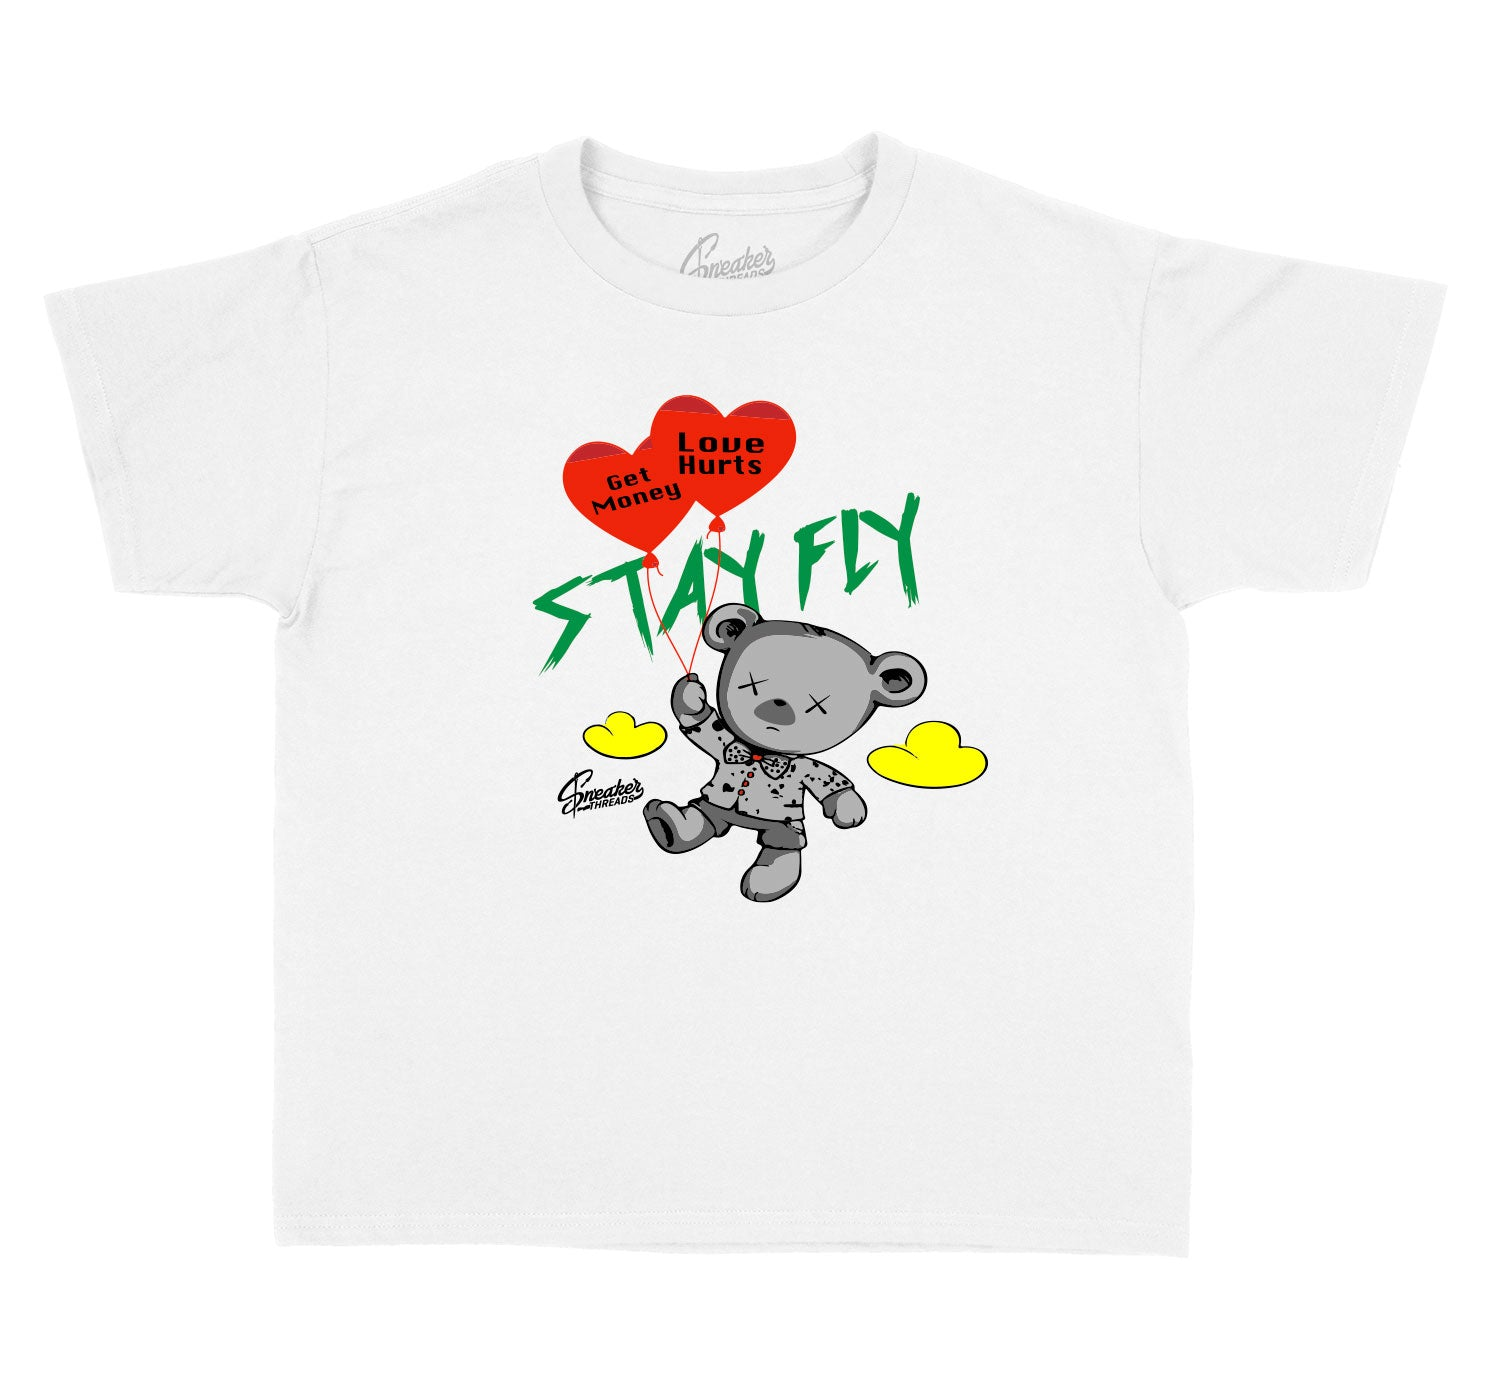 Kids - Rasta 4 Money Over Love Shirt